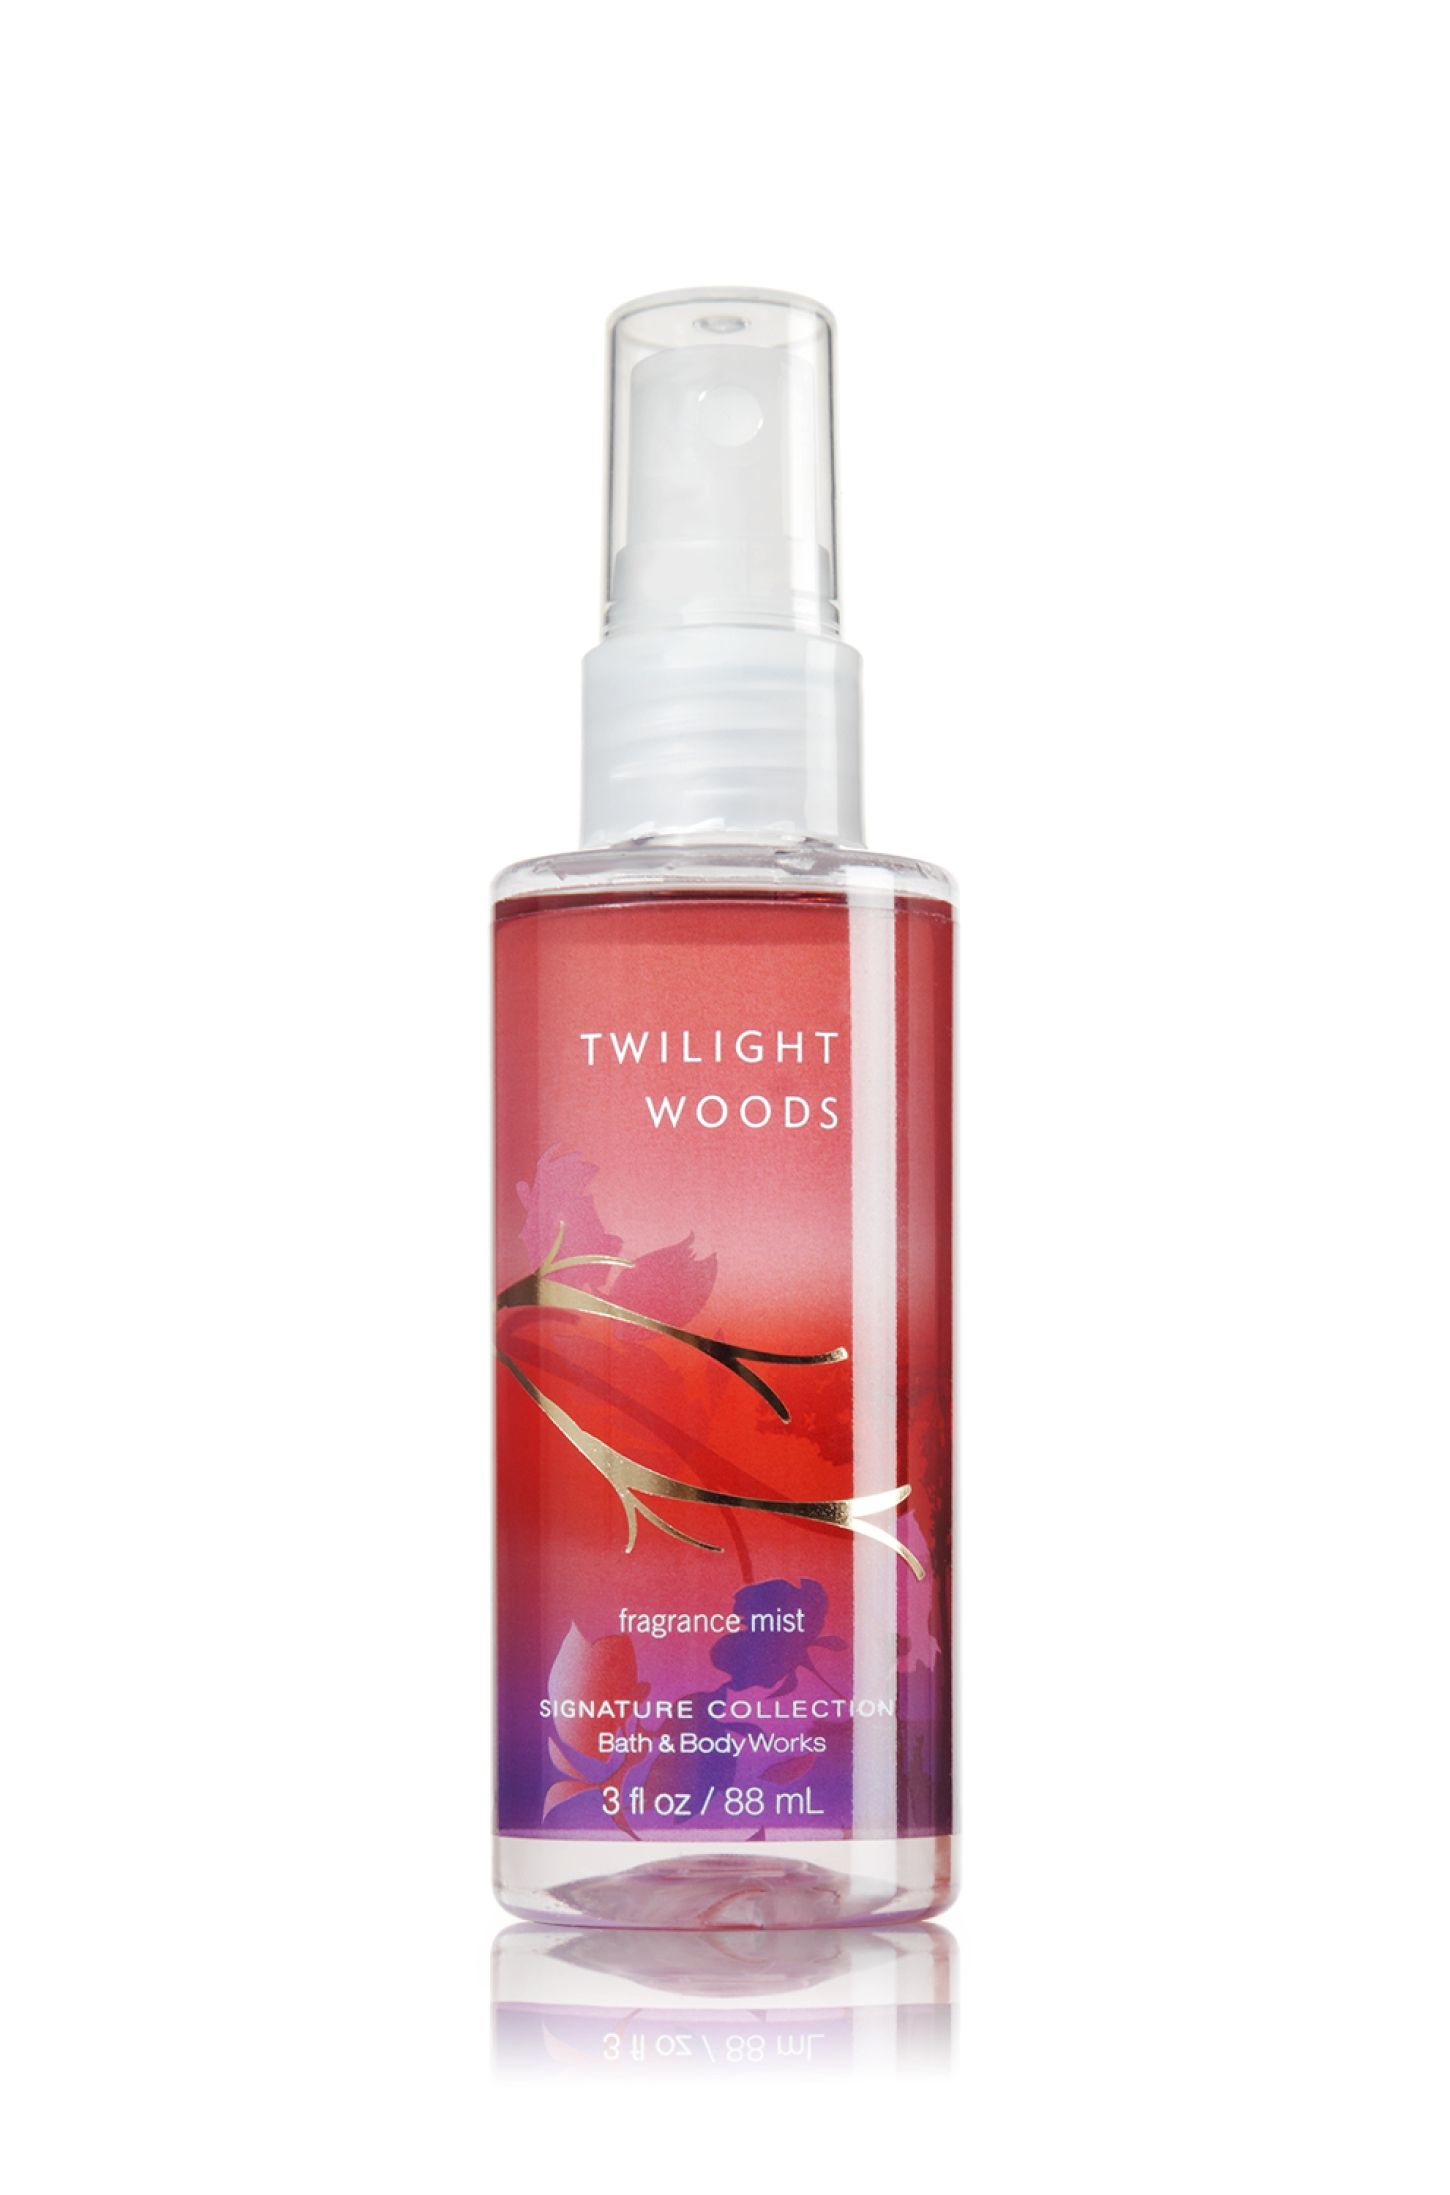 Twilight Woods Travel Size Fragrance Mist Signature